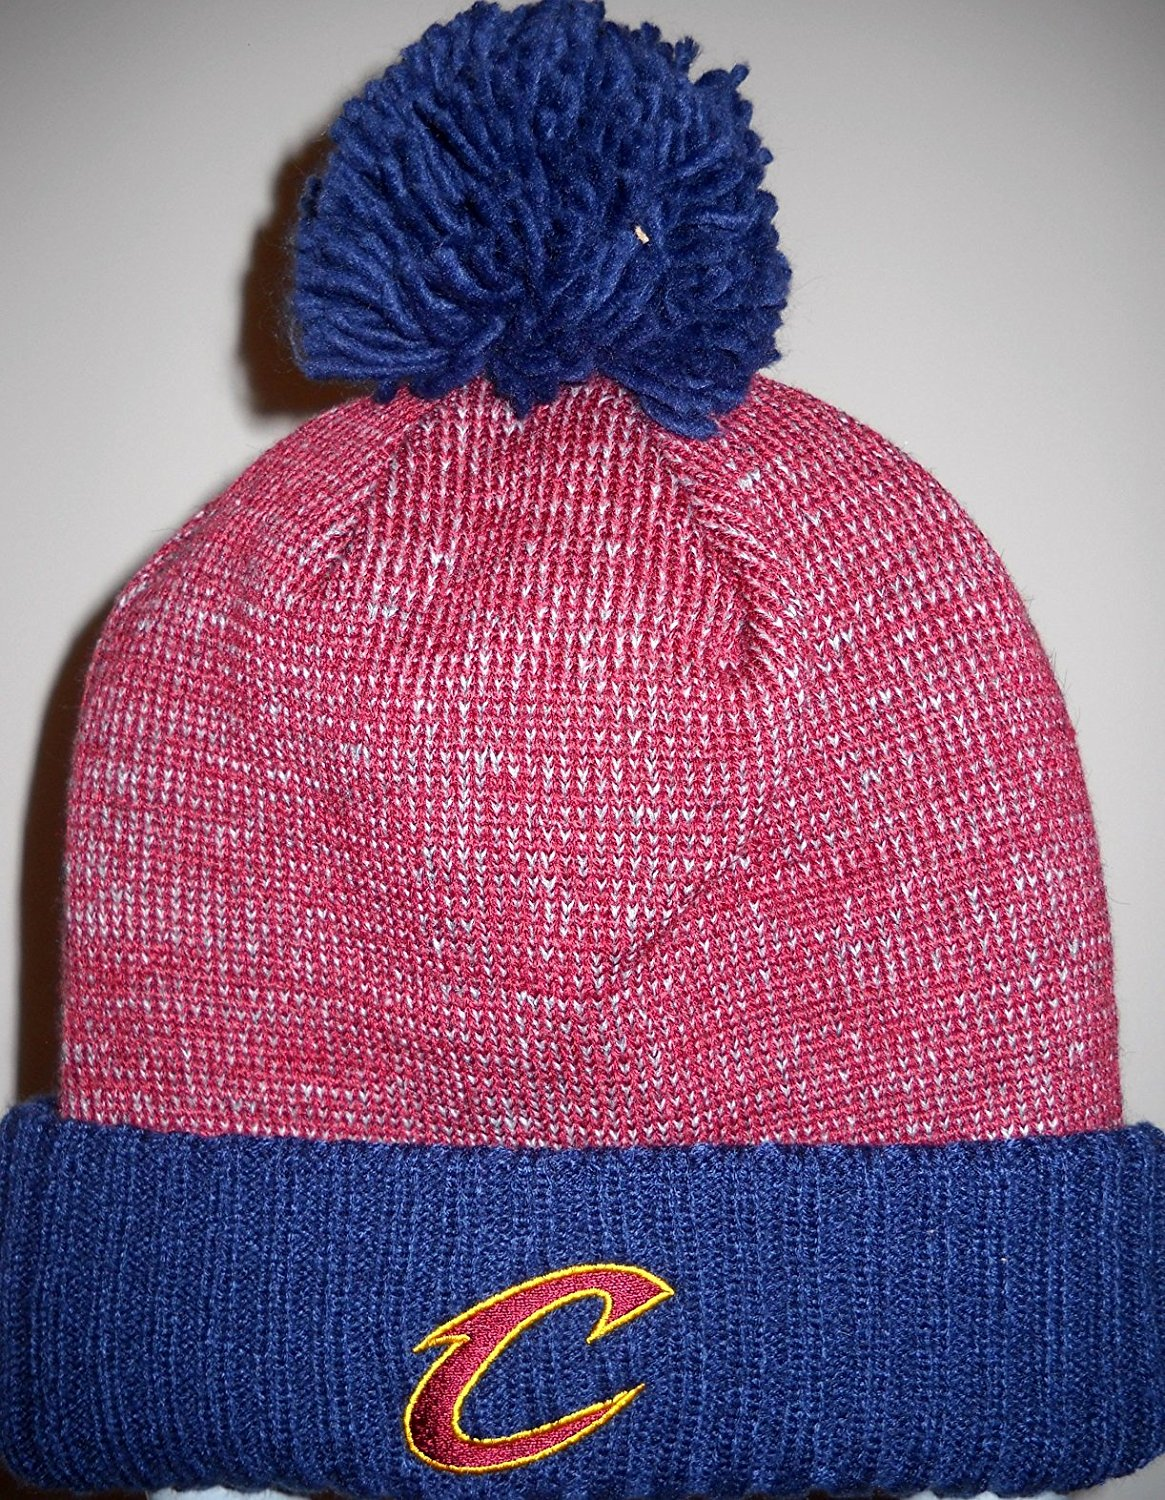 c279b42176d Get Quotations · Cleveland Cavaliers Adult Wine and Blue Knit Cap Hat  Toboggan with Embroidered C Logo on Ribbed